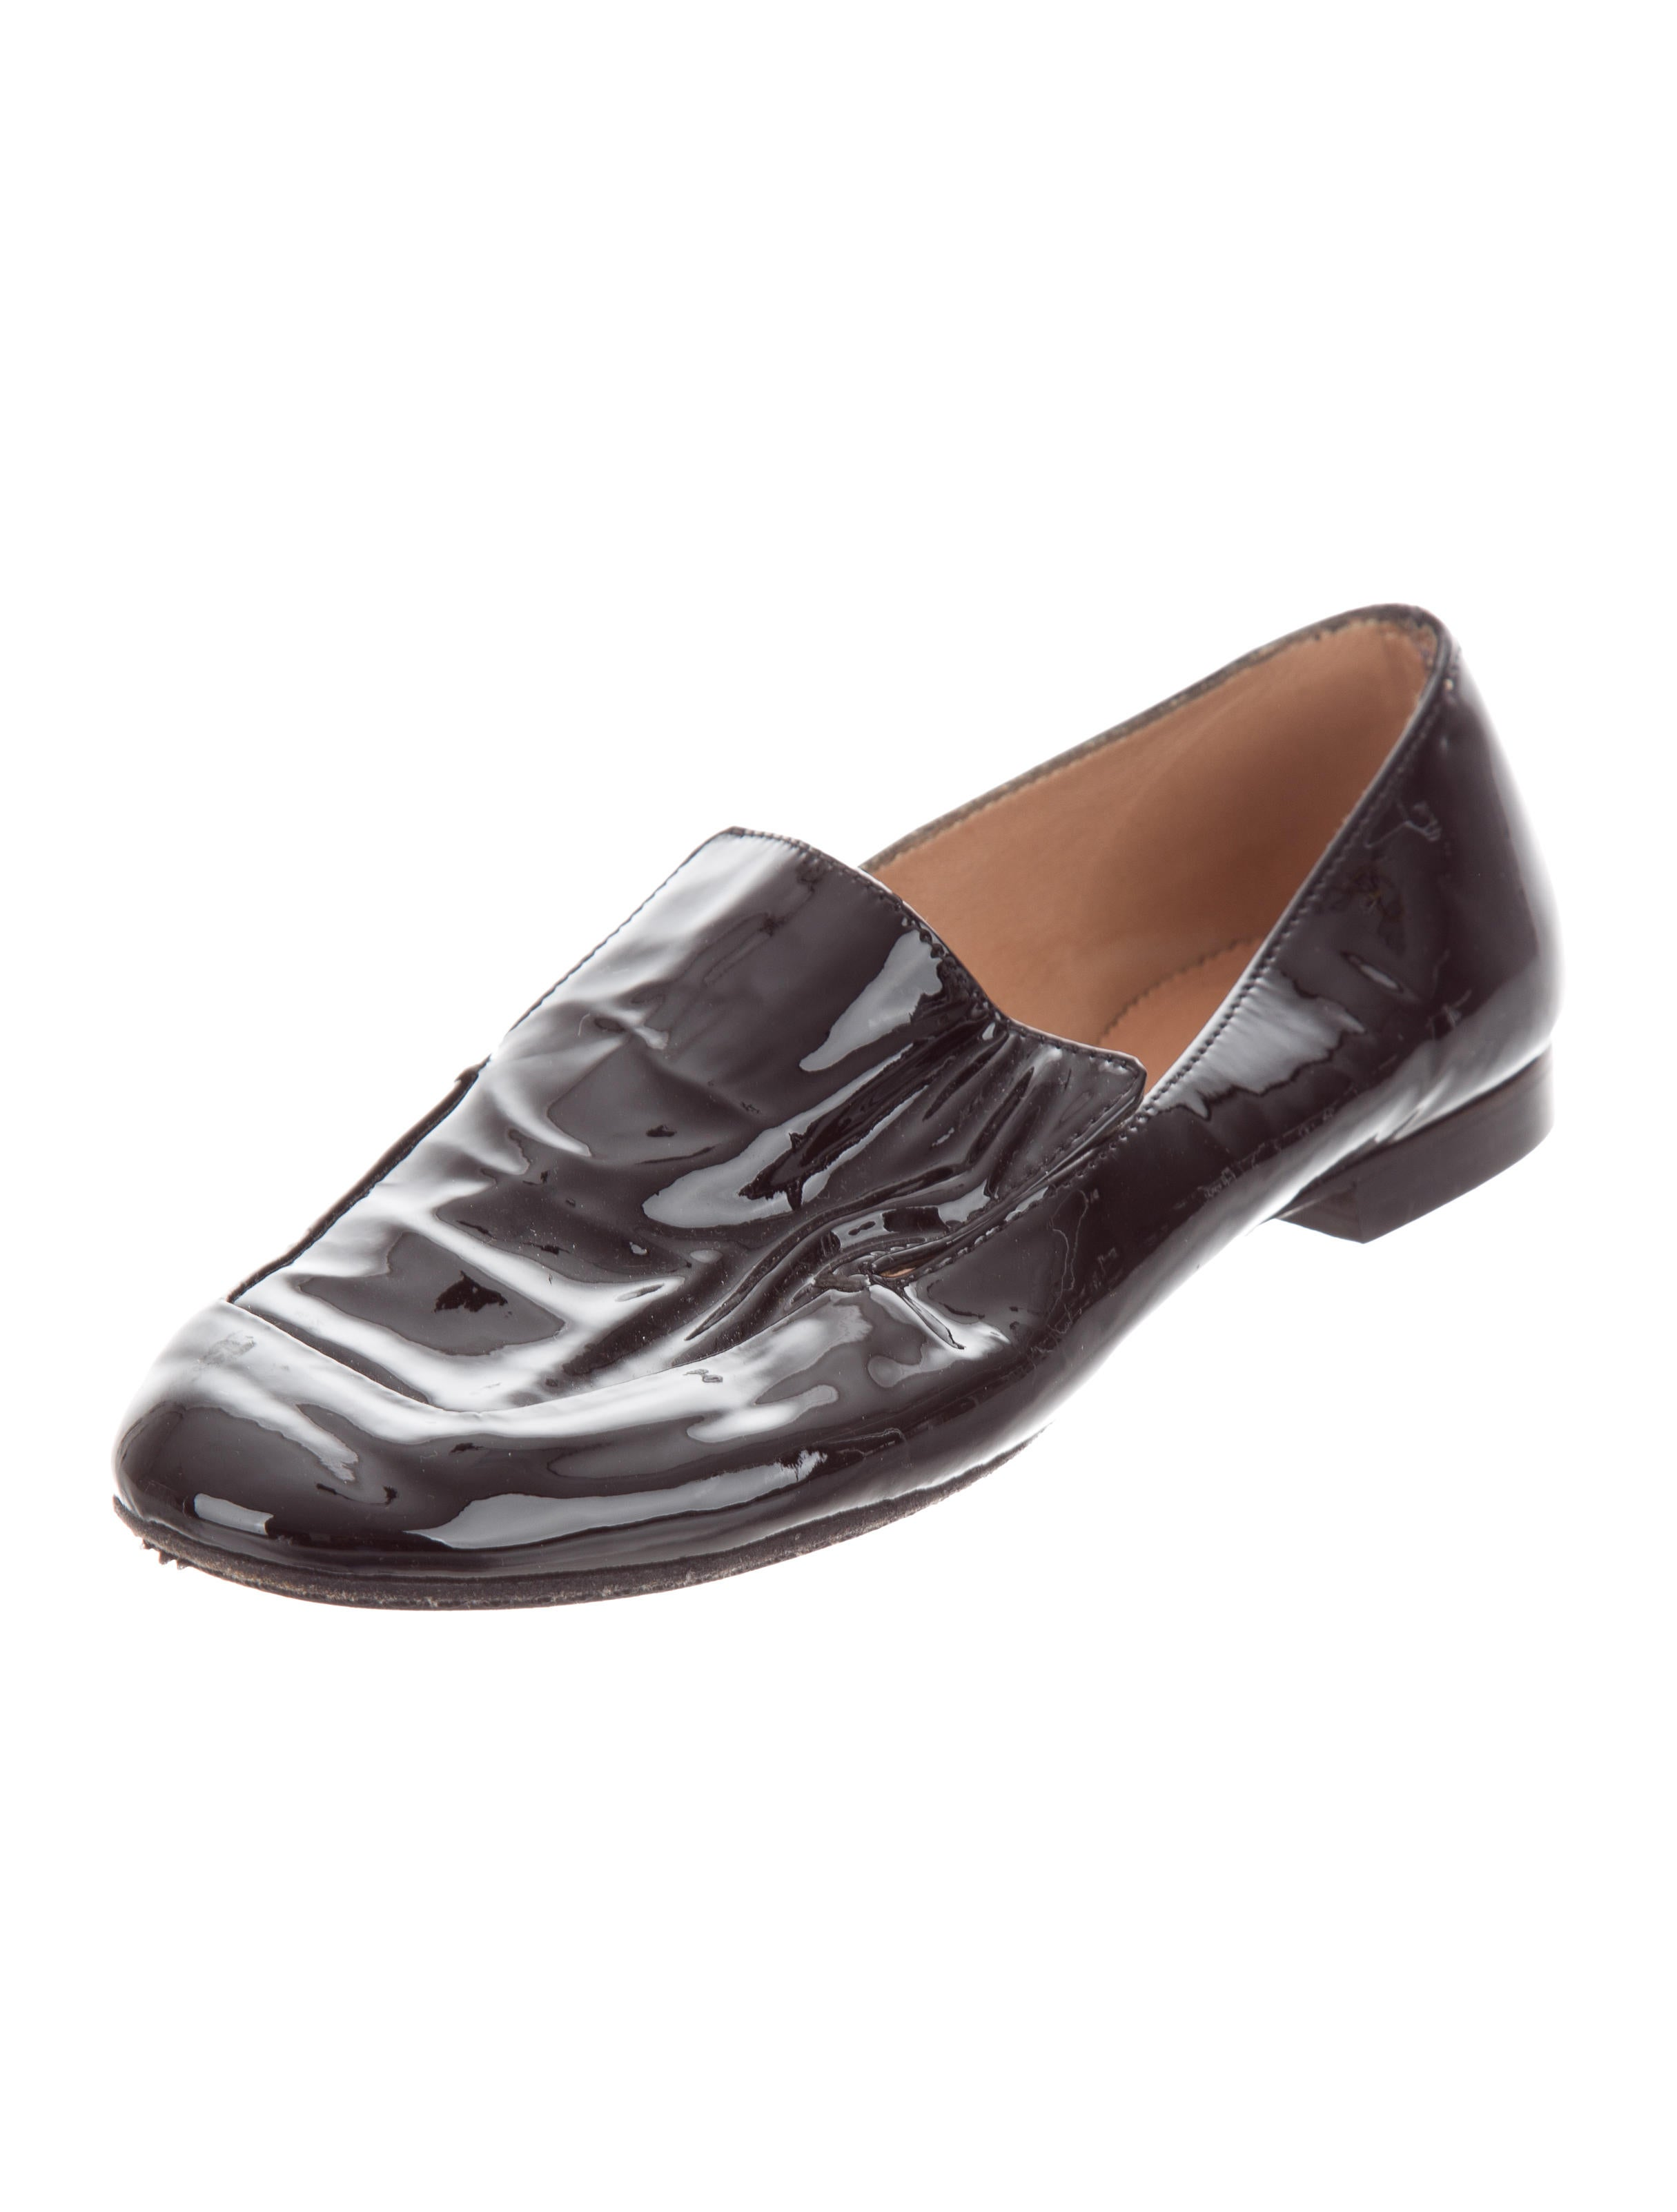 Robert Clergerie Patent Leather Round-Toe Loafers official site online clearance outlet locations free shipping cheap shipping outlet store online SUuNVed0